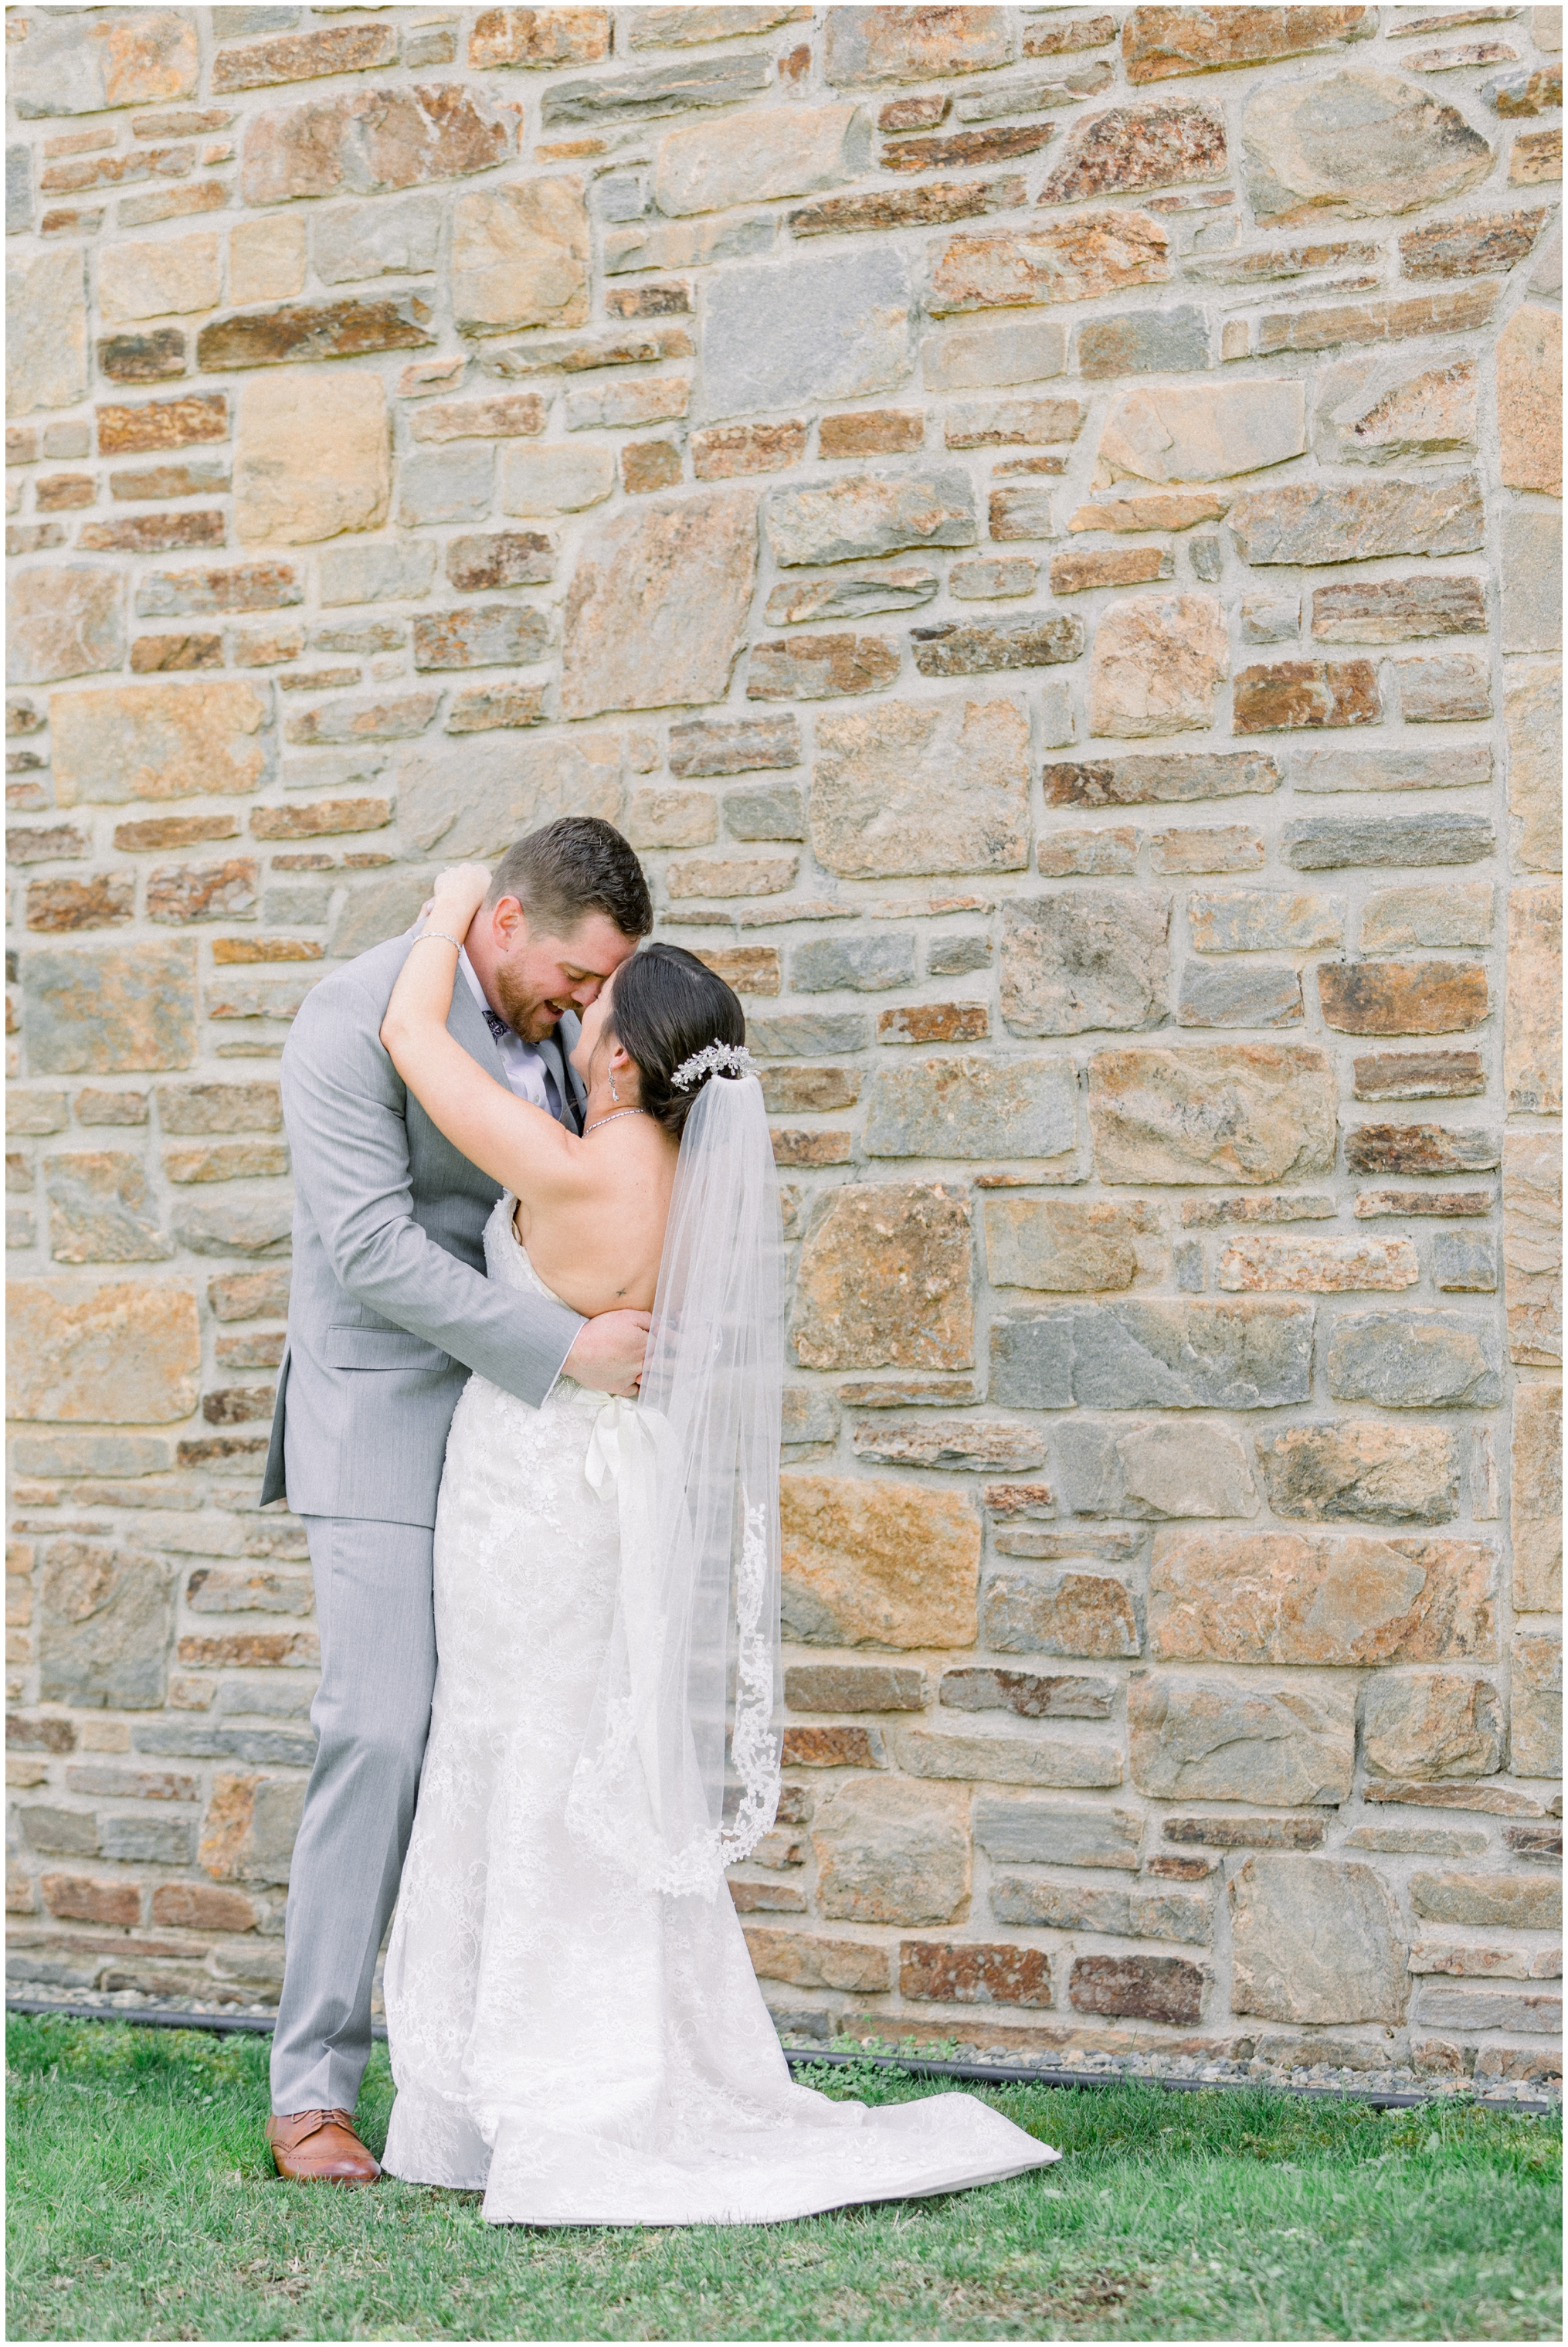 Krista Brackin Photography | April Wedding at The Carriage House at Rockwood Park_0036.jpg